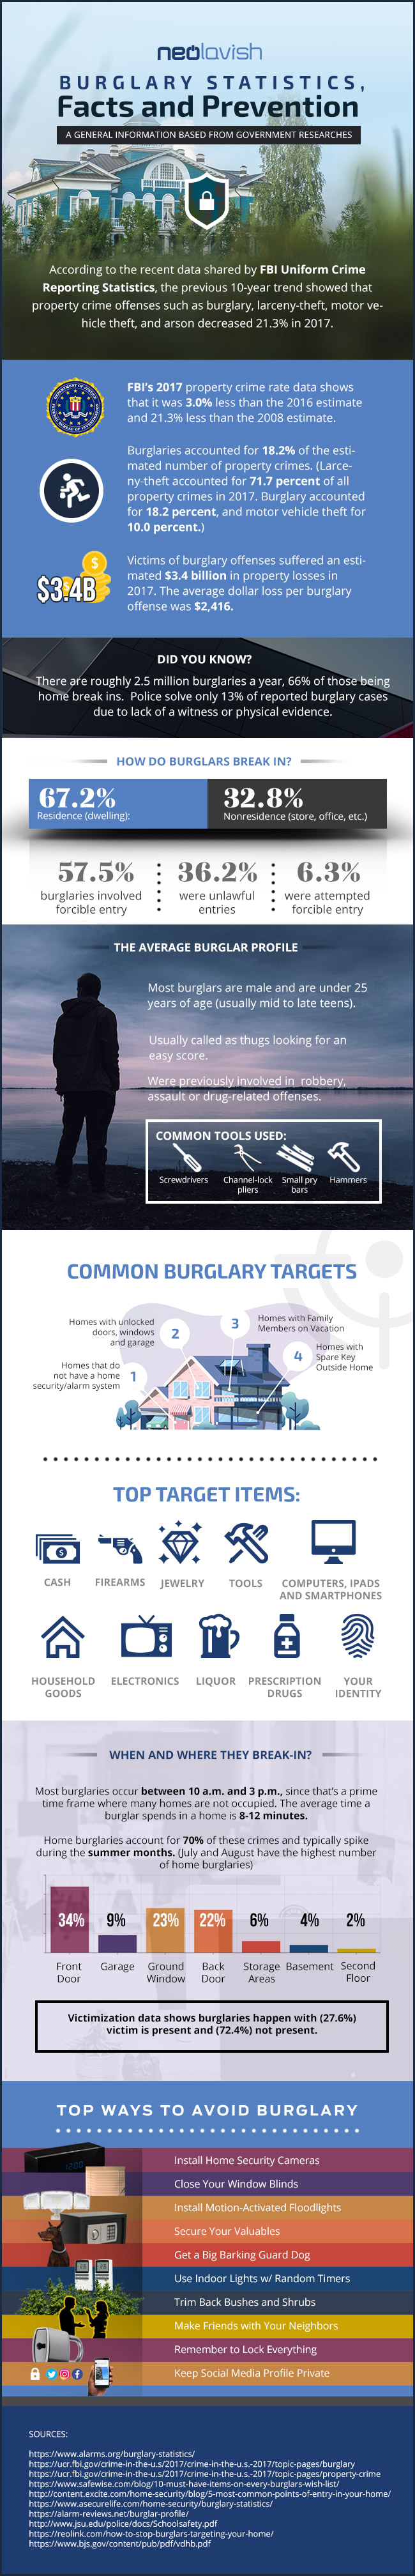 Burglary Statistics, Facts and Prevention